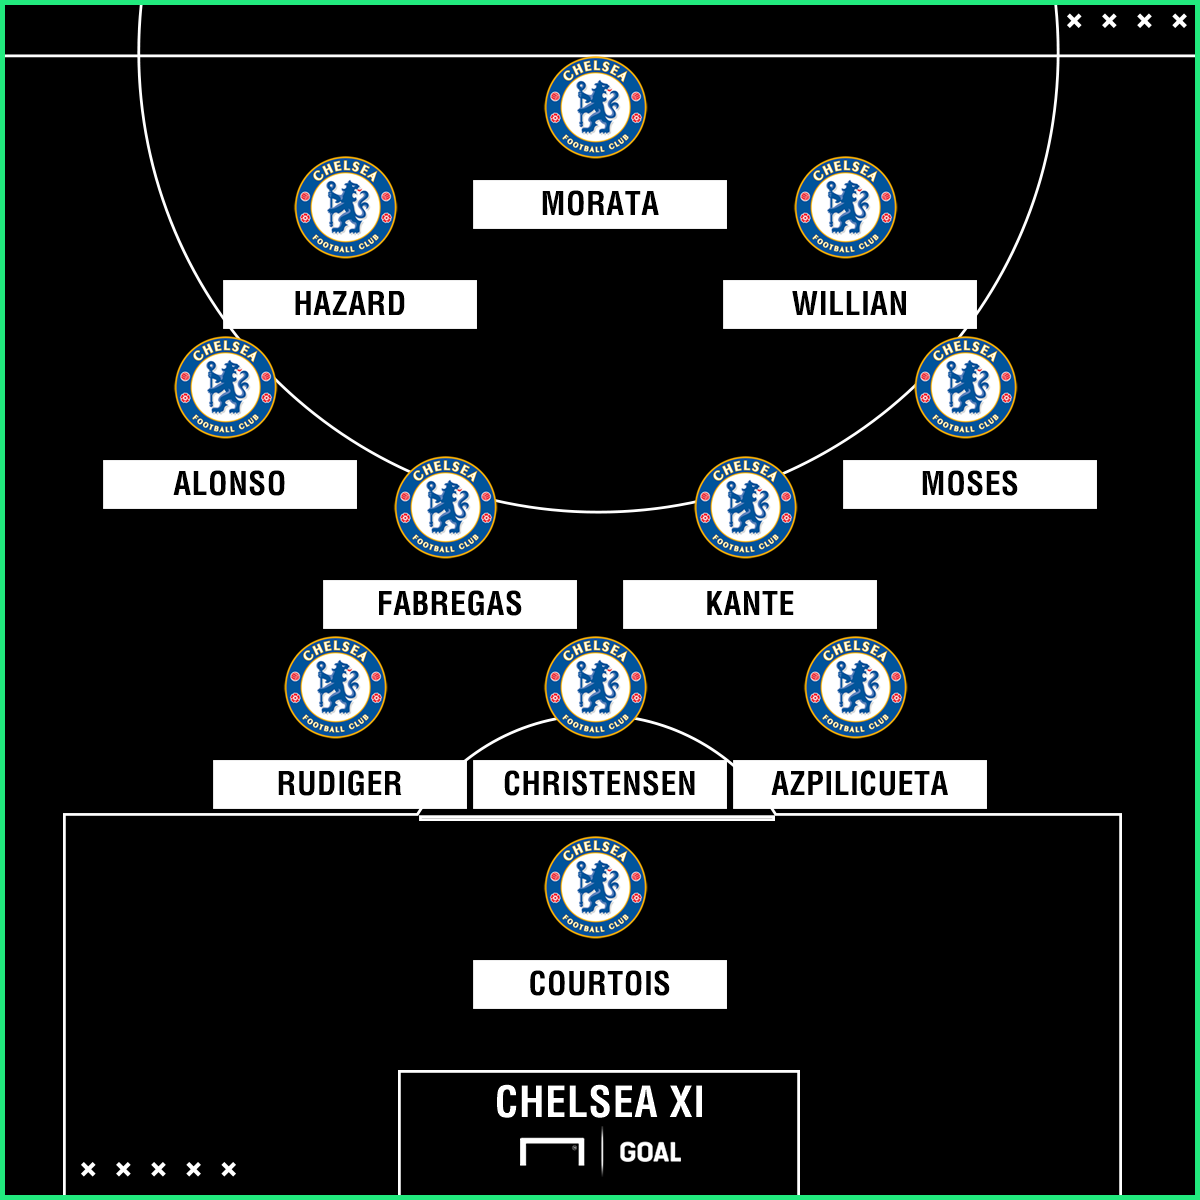 Chelsea Team News: Injuries, Suspensions And Line-up Vs